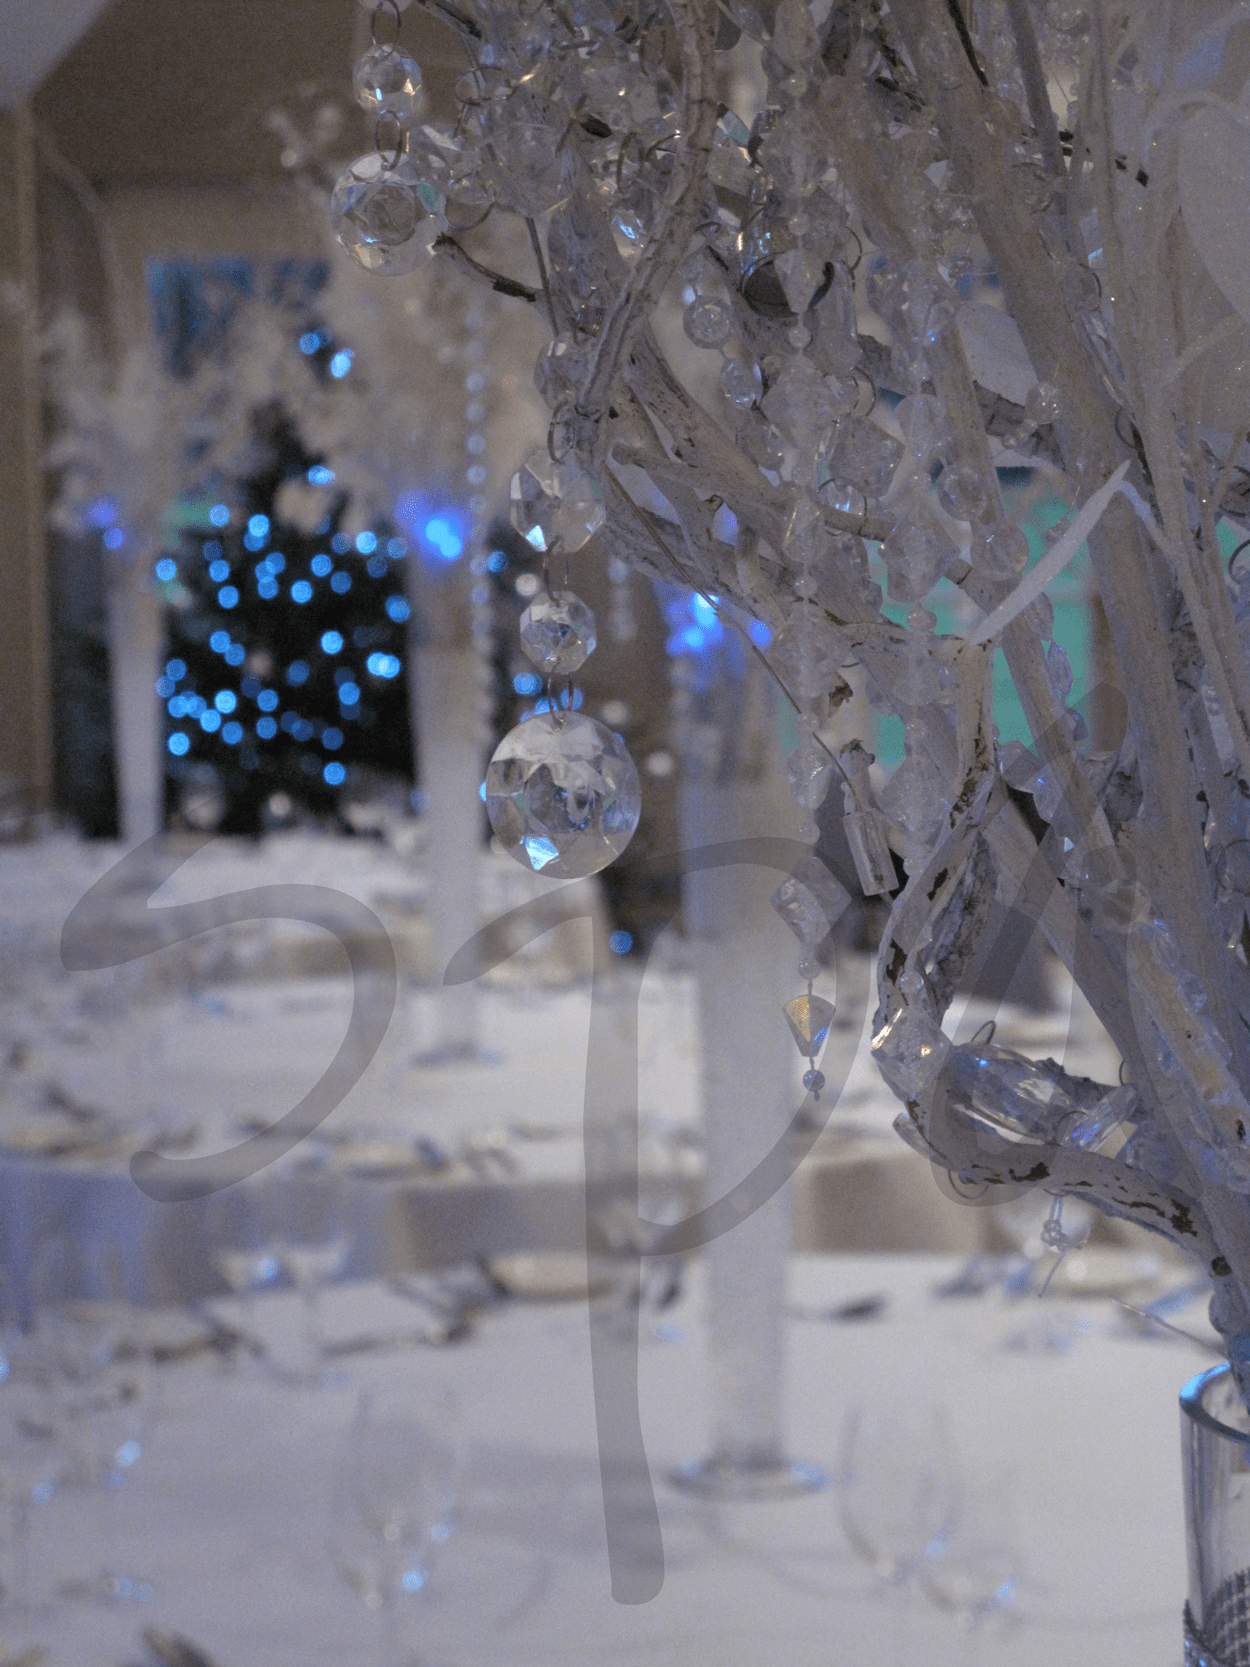 Crystal Decorations For Home Winter Wonderland Themed Events So Lets Party